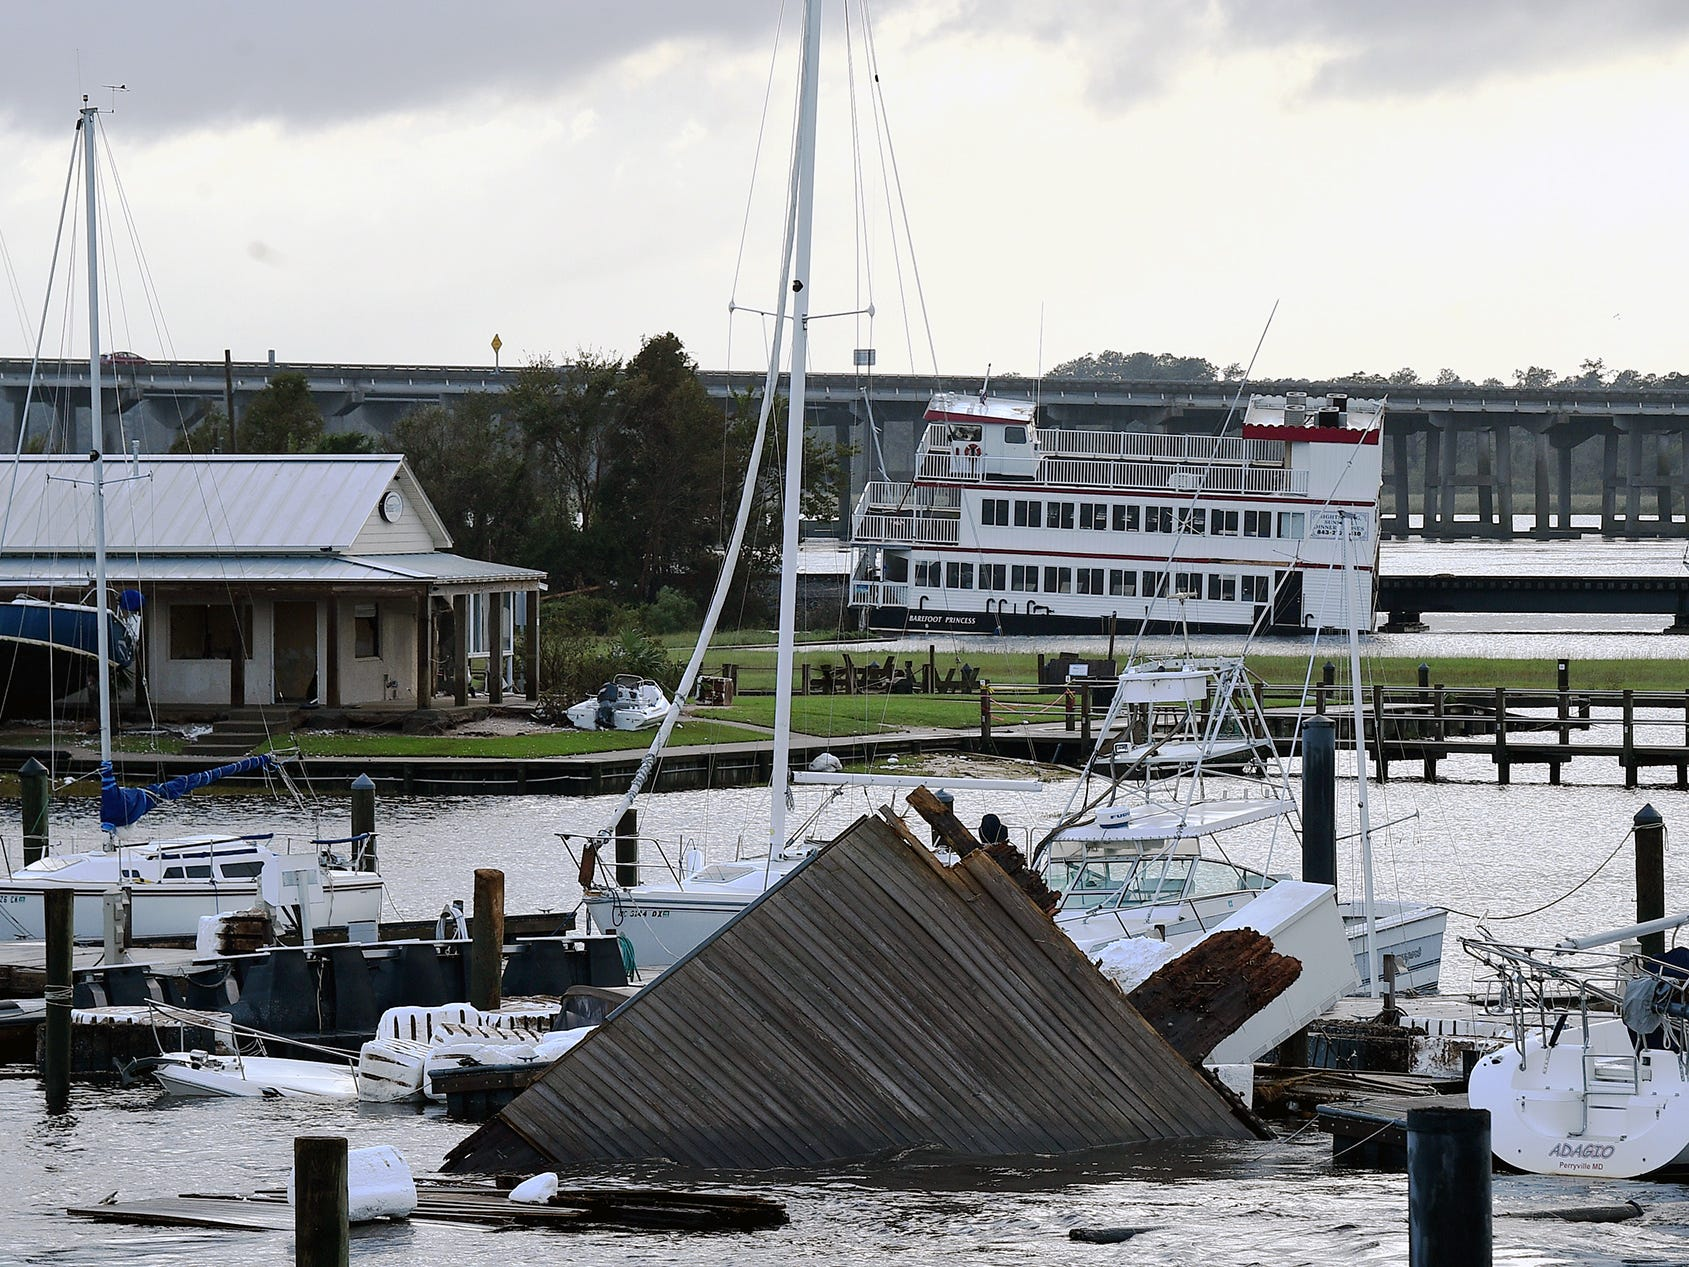 Some boats have been damaged by flooding and high winds at a marina at New Bern, N.C.